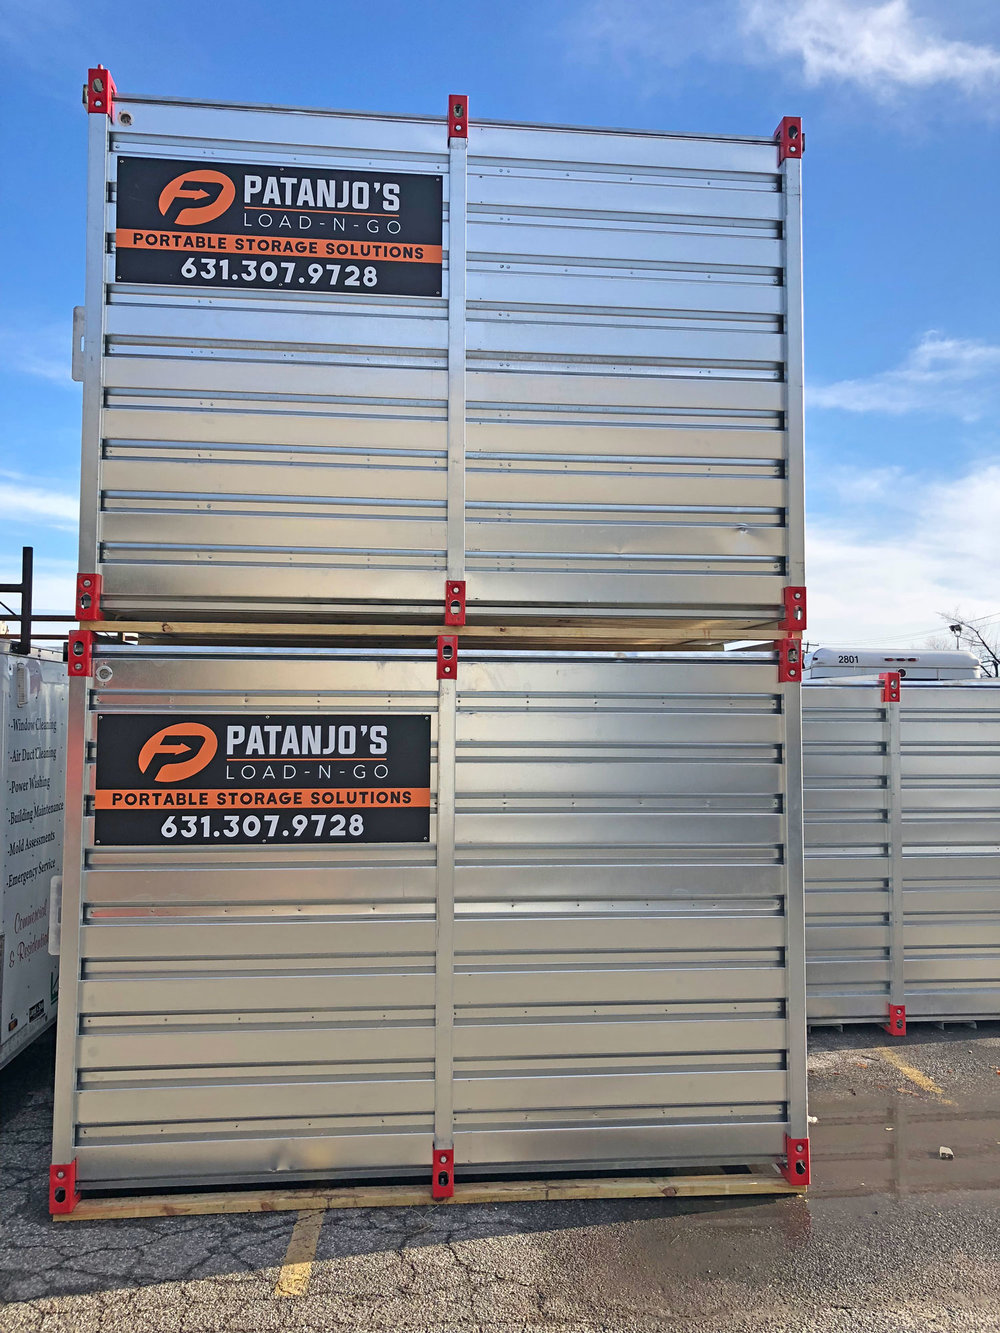 Patanjo's Load-N-Go Portable Storage Solutions